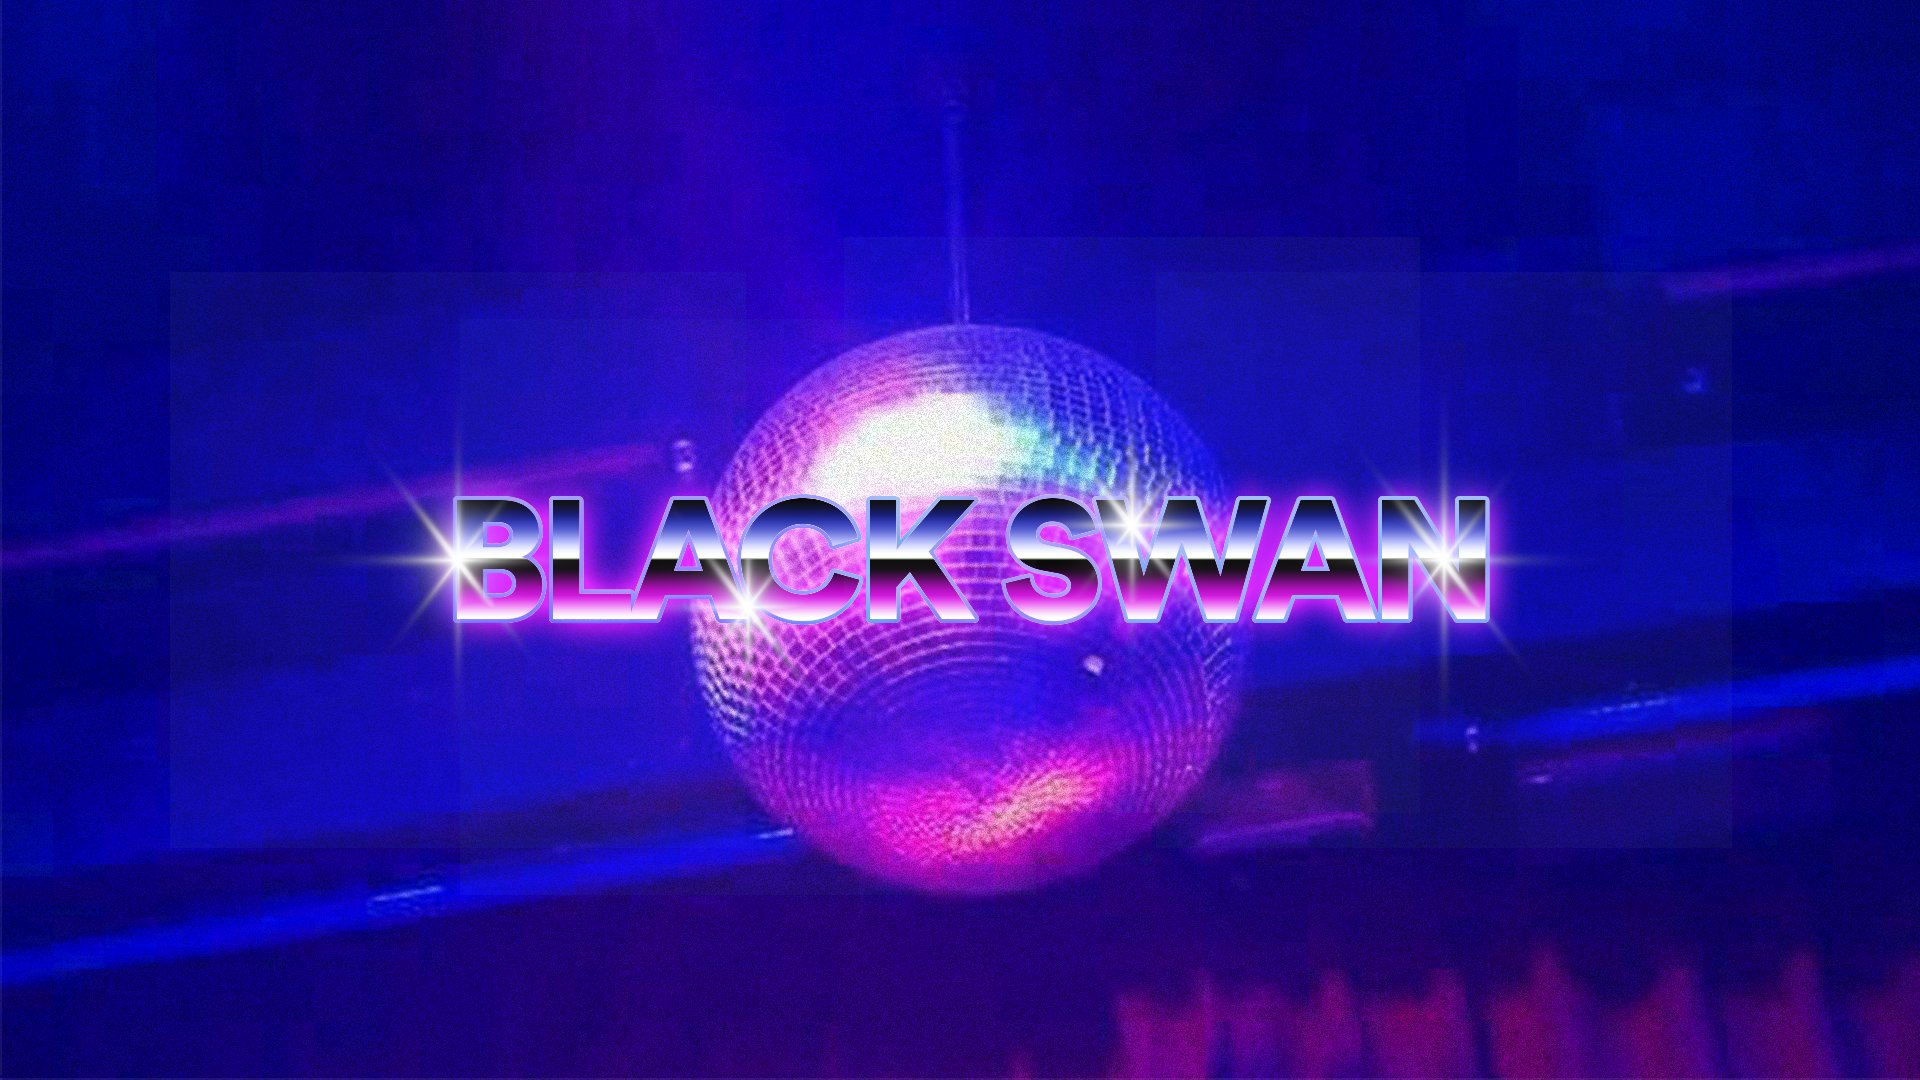 𝗻𝗼𝘄 𝗽𝗹𝗮𝘆𝗶𝗻𝗴: BLACK SWAN  #DYNAMITESEVENPARTY https://t.co/SBVid19fXY